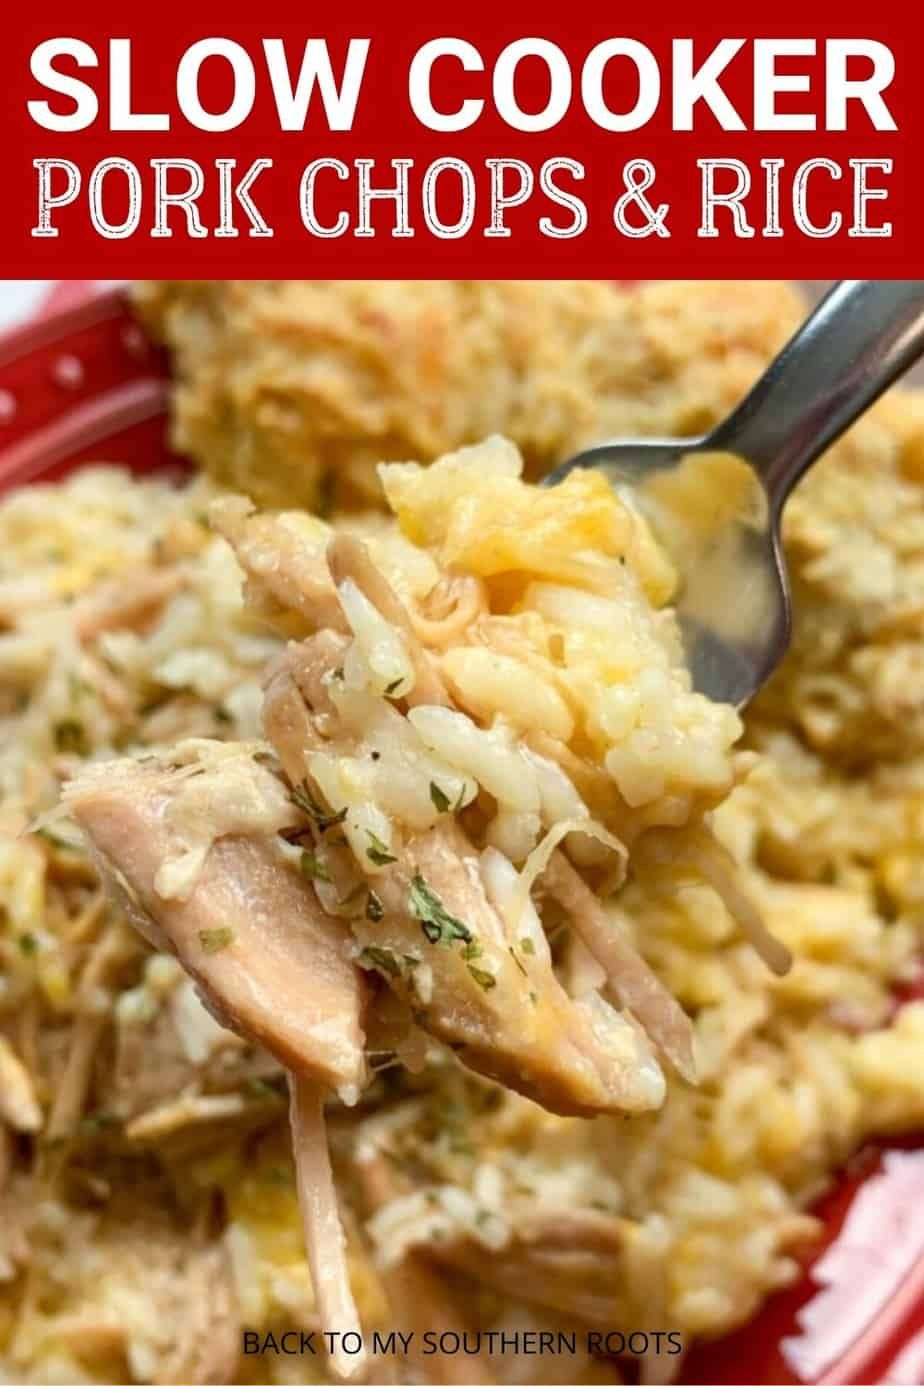 Photo of Slow Cooker Pork Chops and Rice